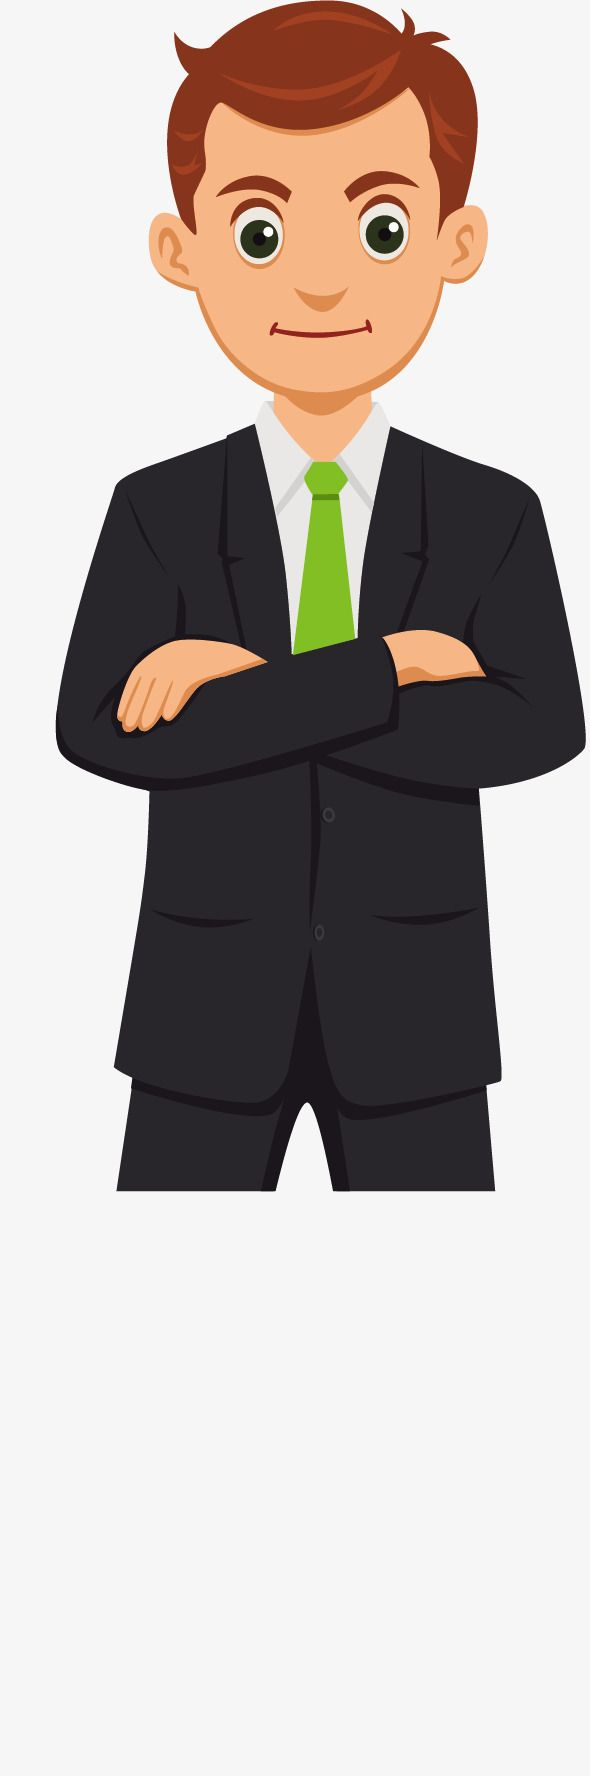 Vector Cartoon Business Man Man Clipart Vector Vector Material Png And Vector With Transparent Background For Free Download Man Clipart Man Vector Cartoon